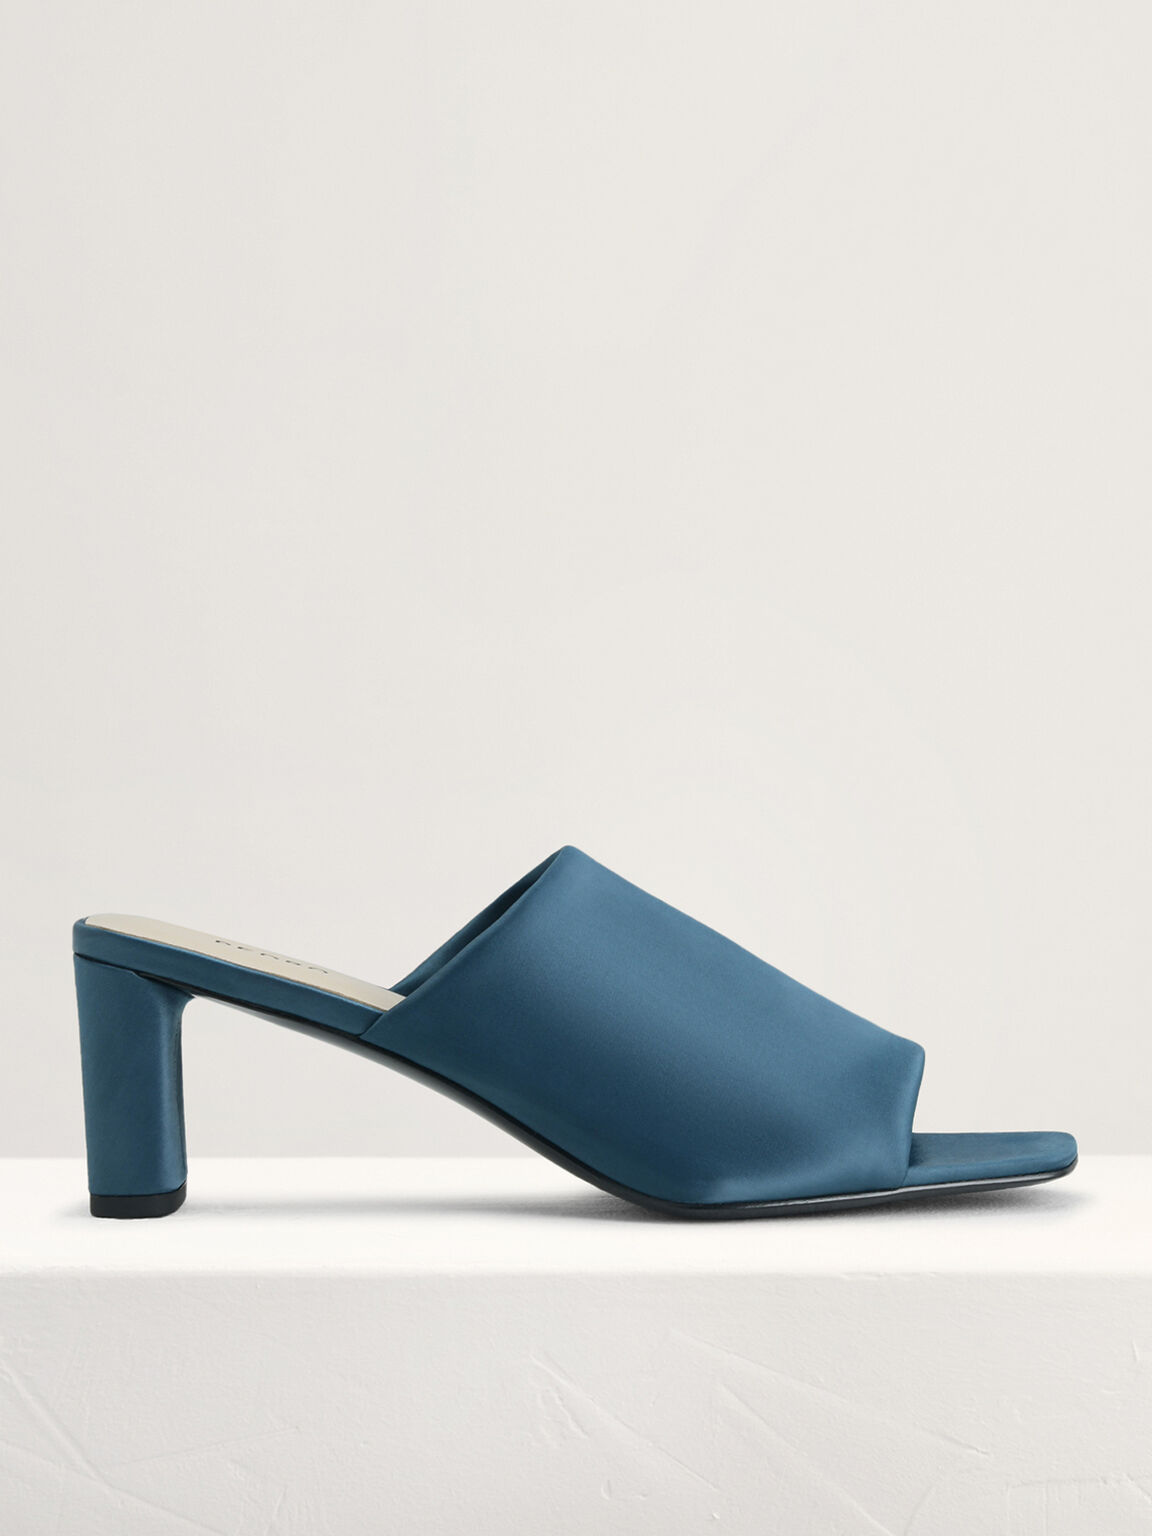 Satin Heeled Mules, Teal, hi-res